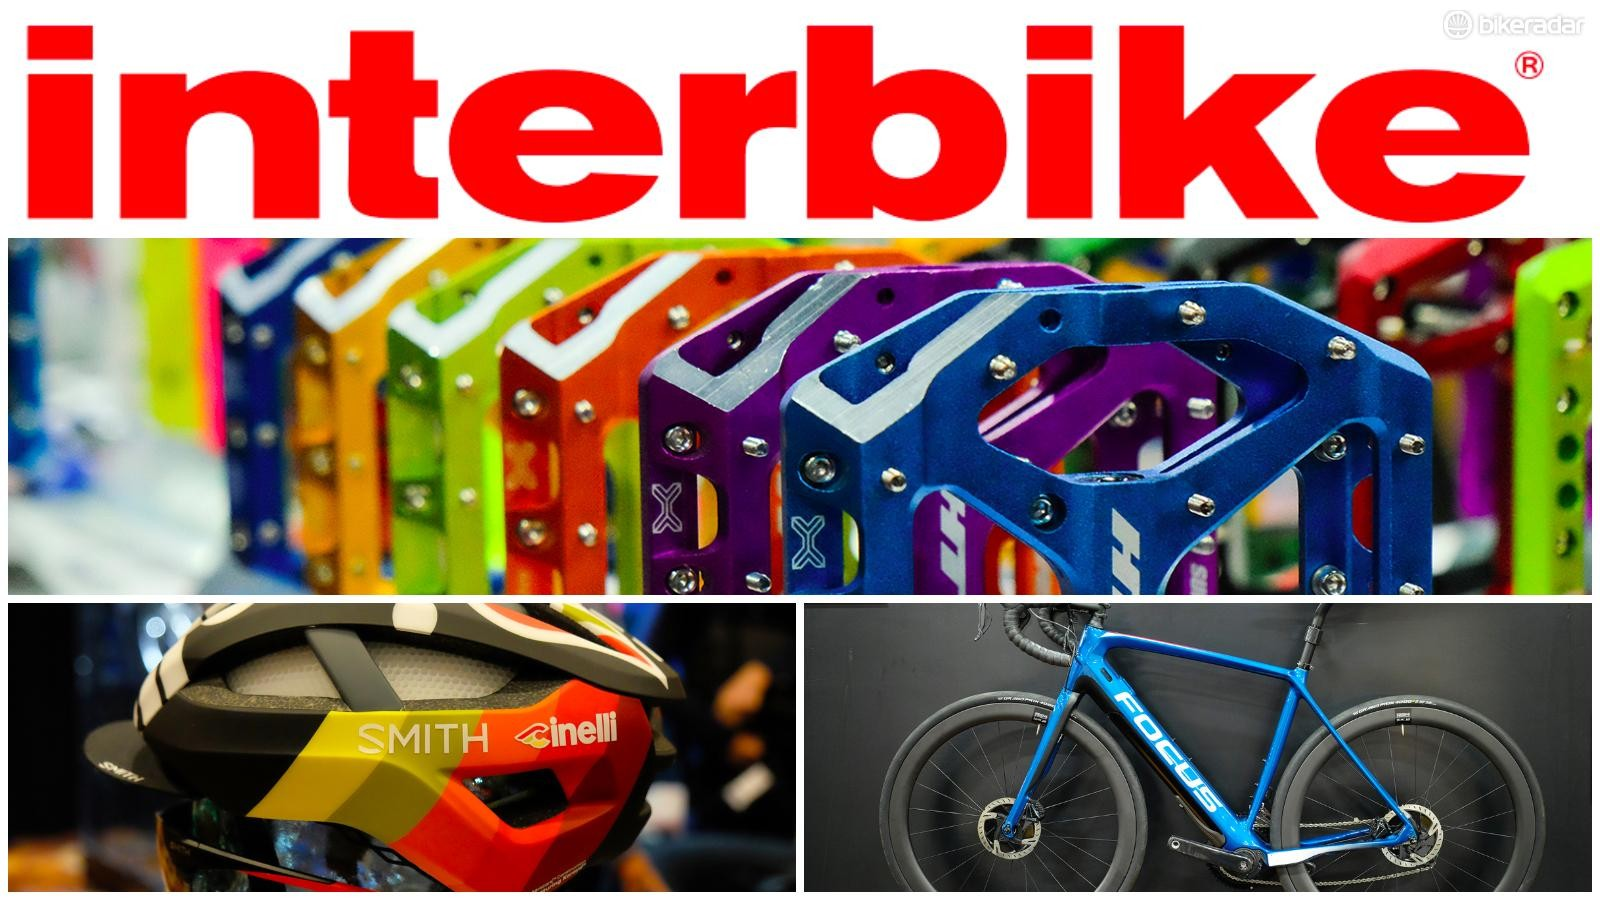 Interbike 2019 has been cancelled